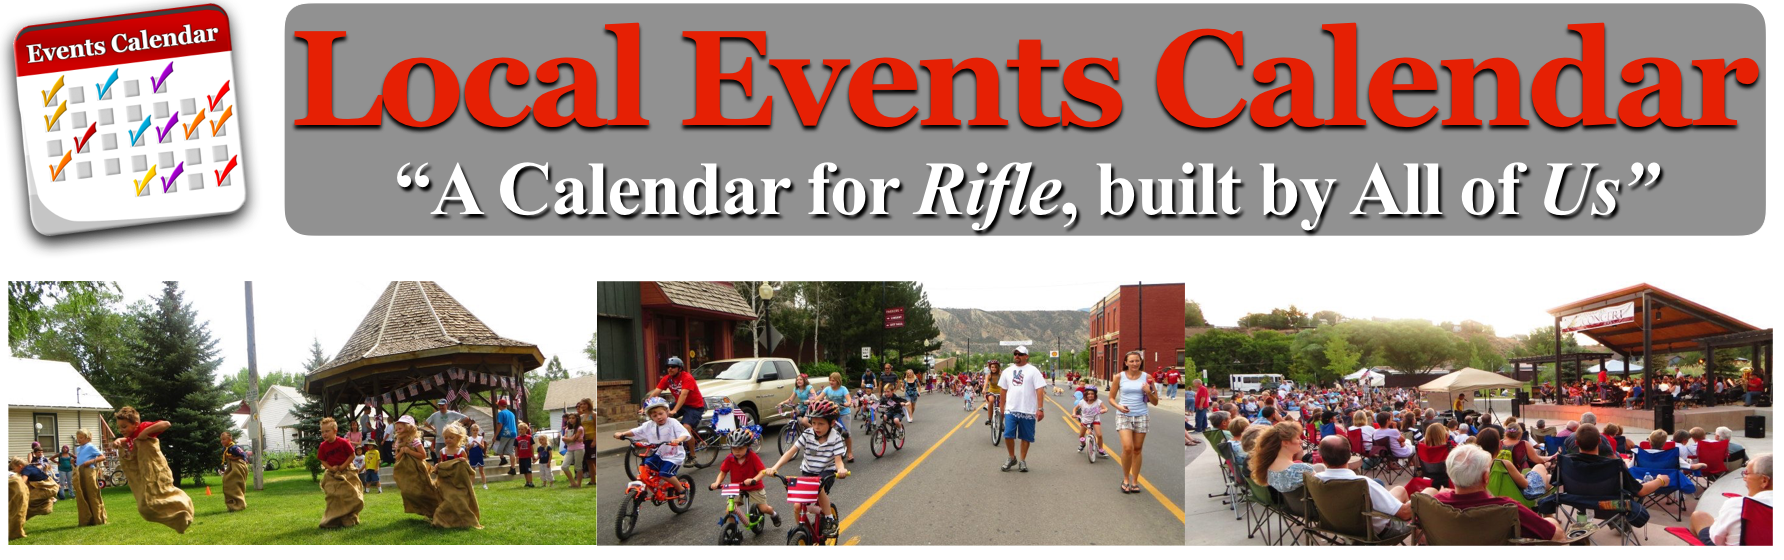 Rifle Events Calendar